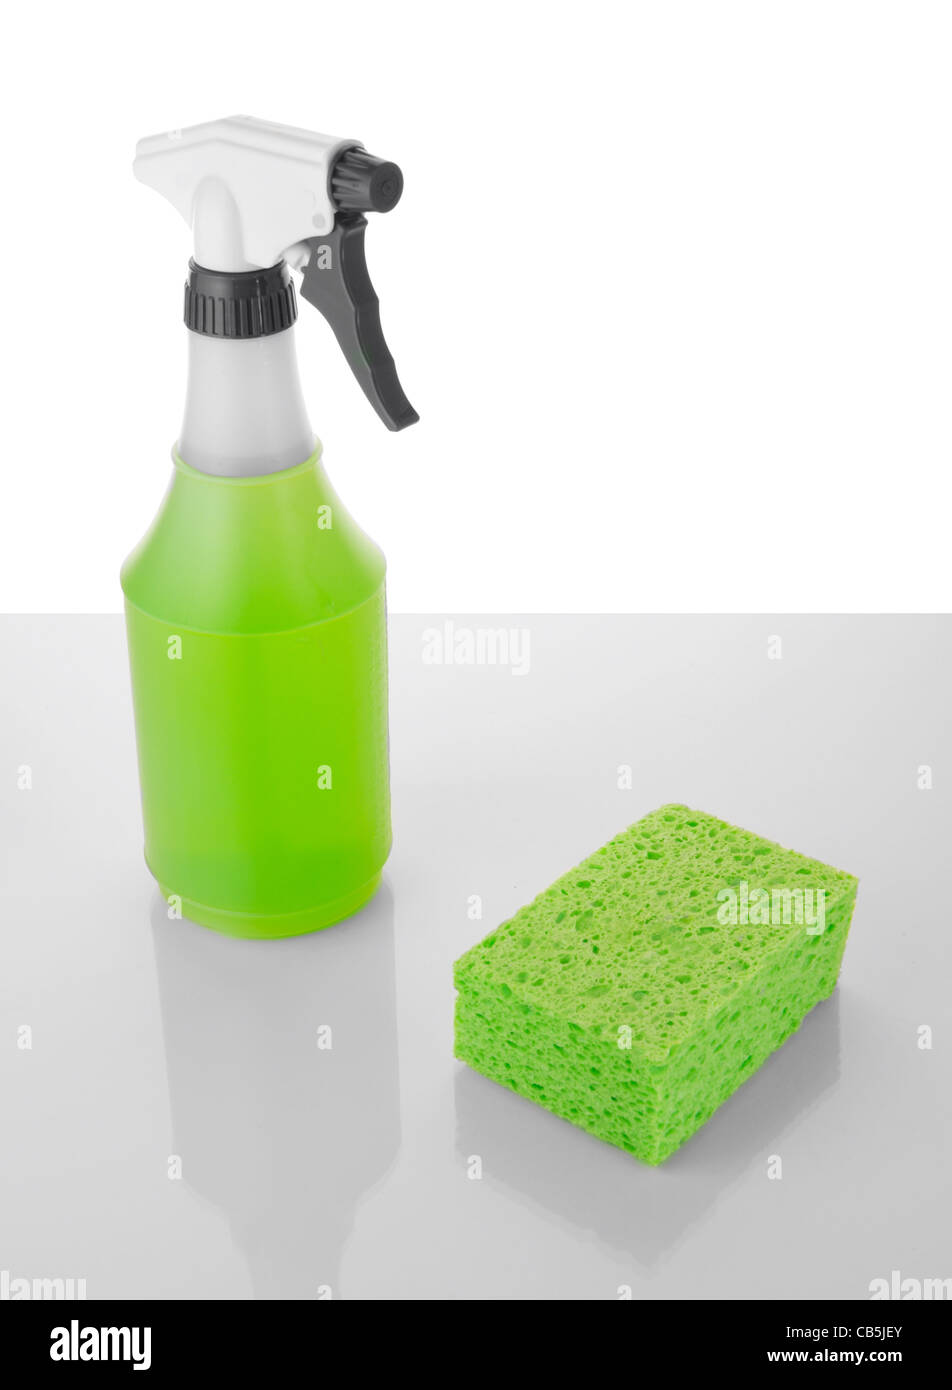 green environmentally safe biodegradable cleaning detergent spray product - Stock Image